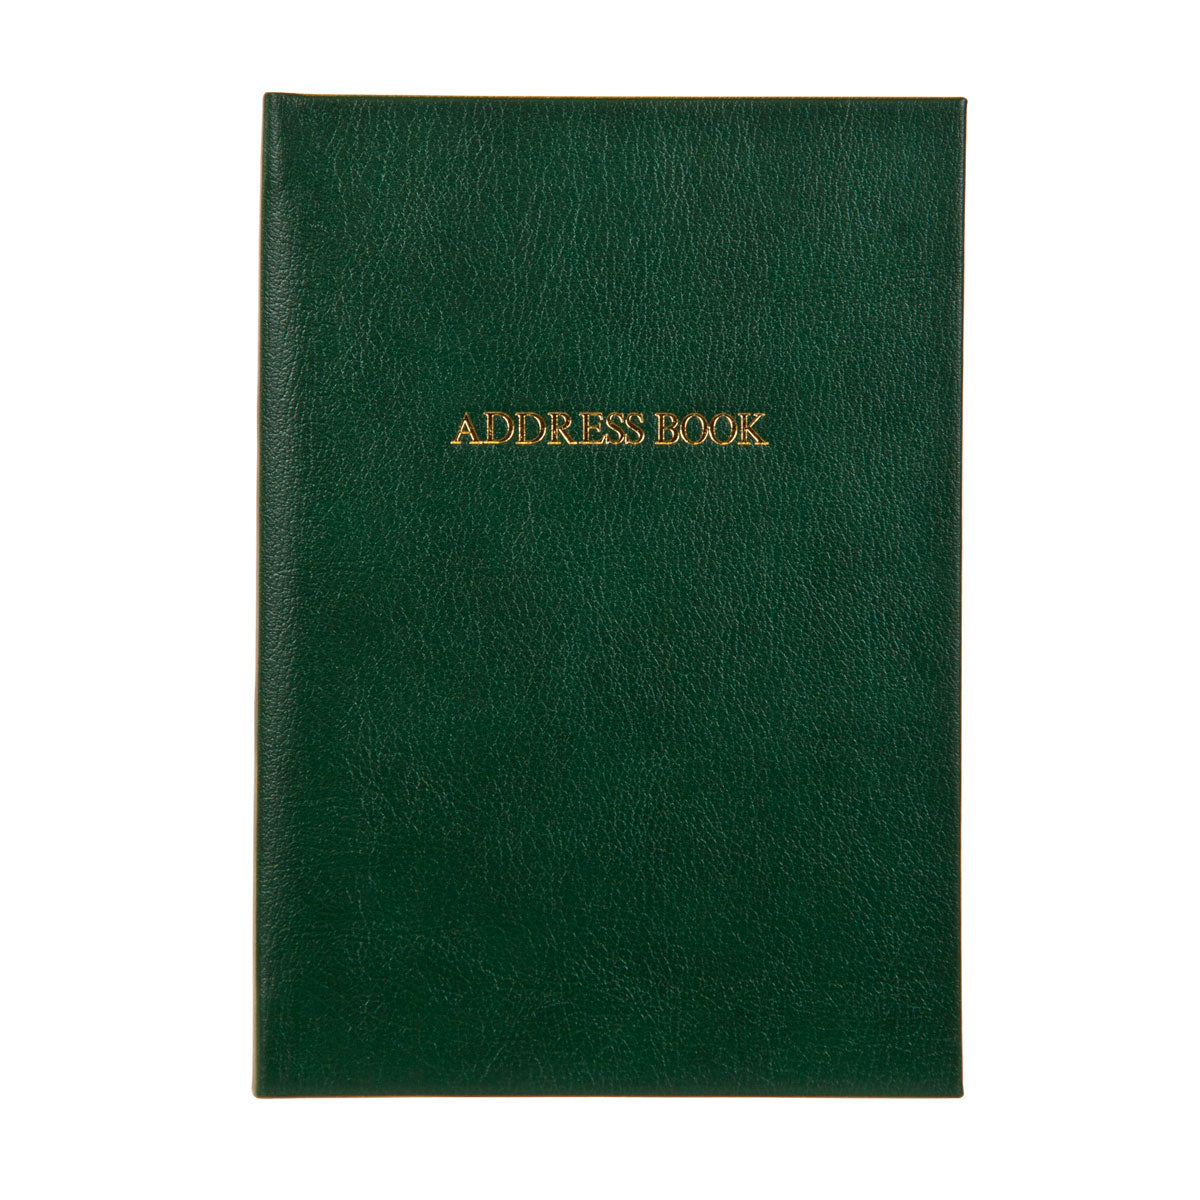 Green Leather Address book with gold embossed title